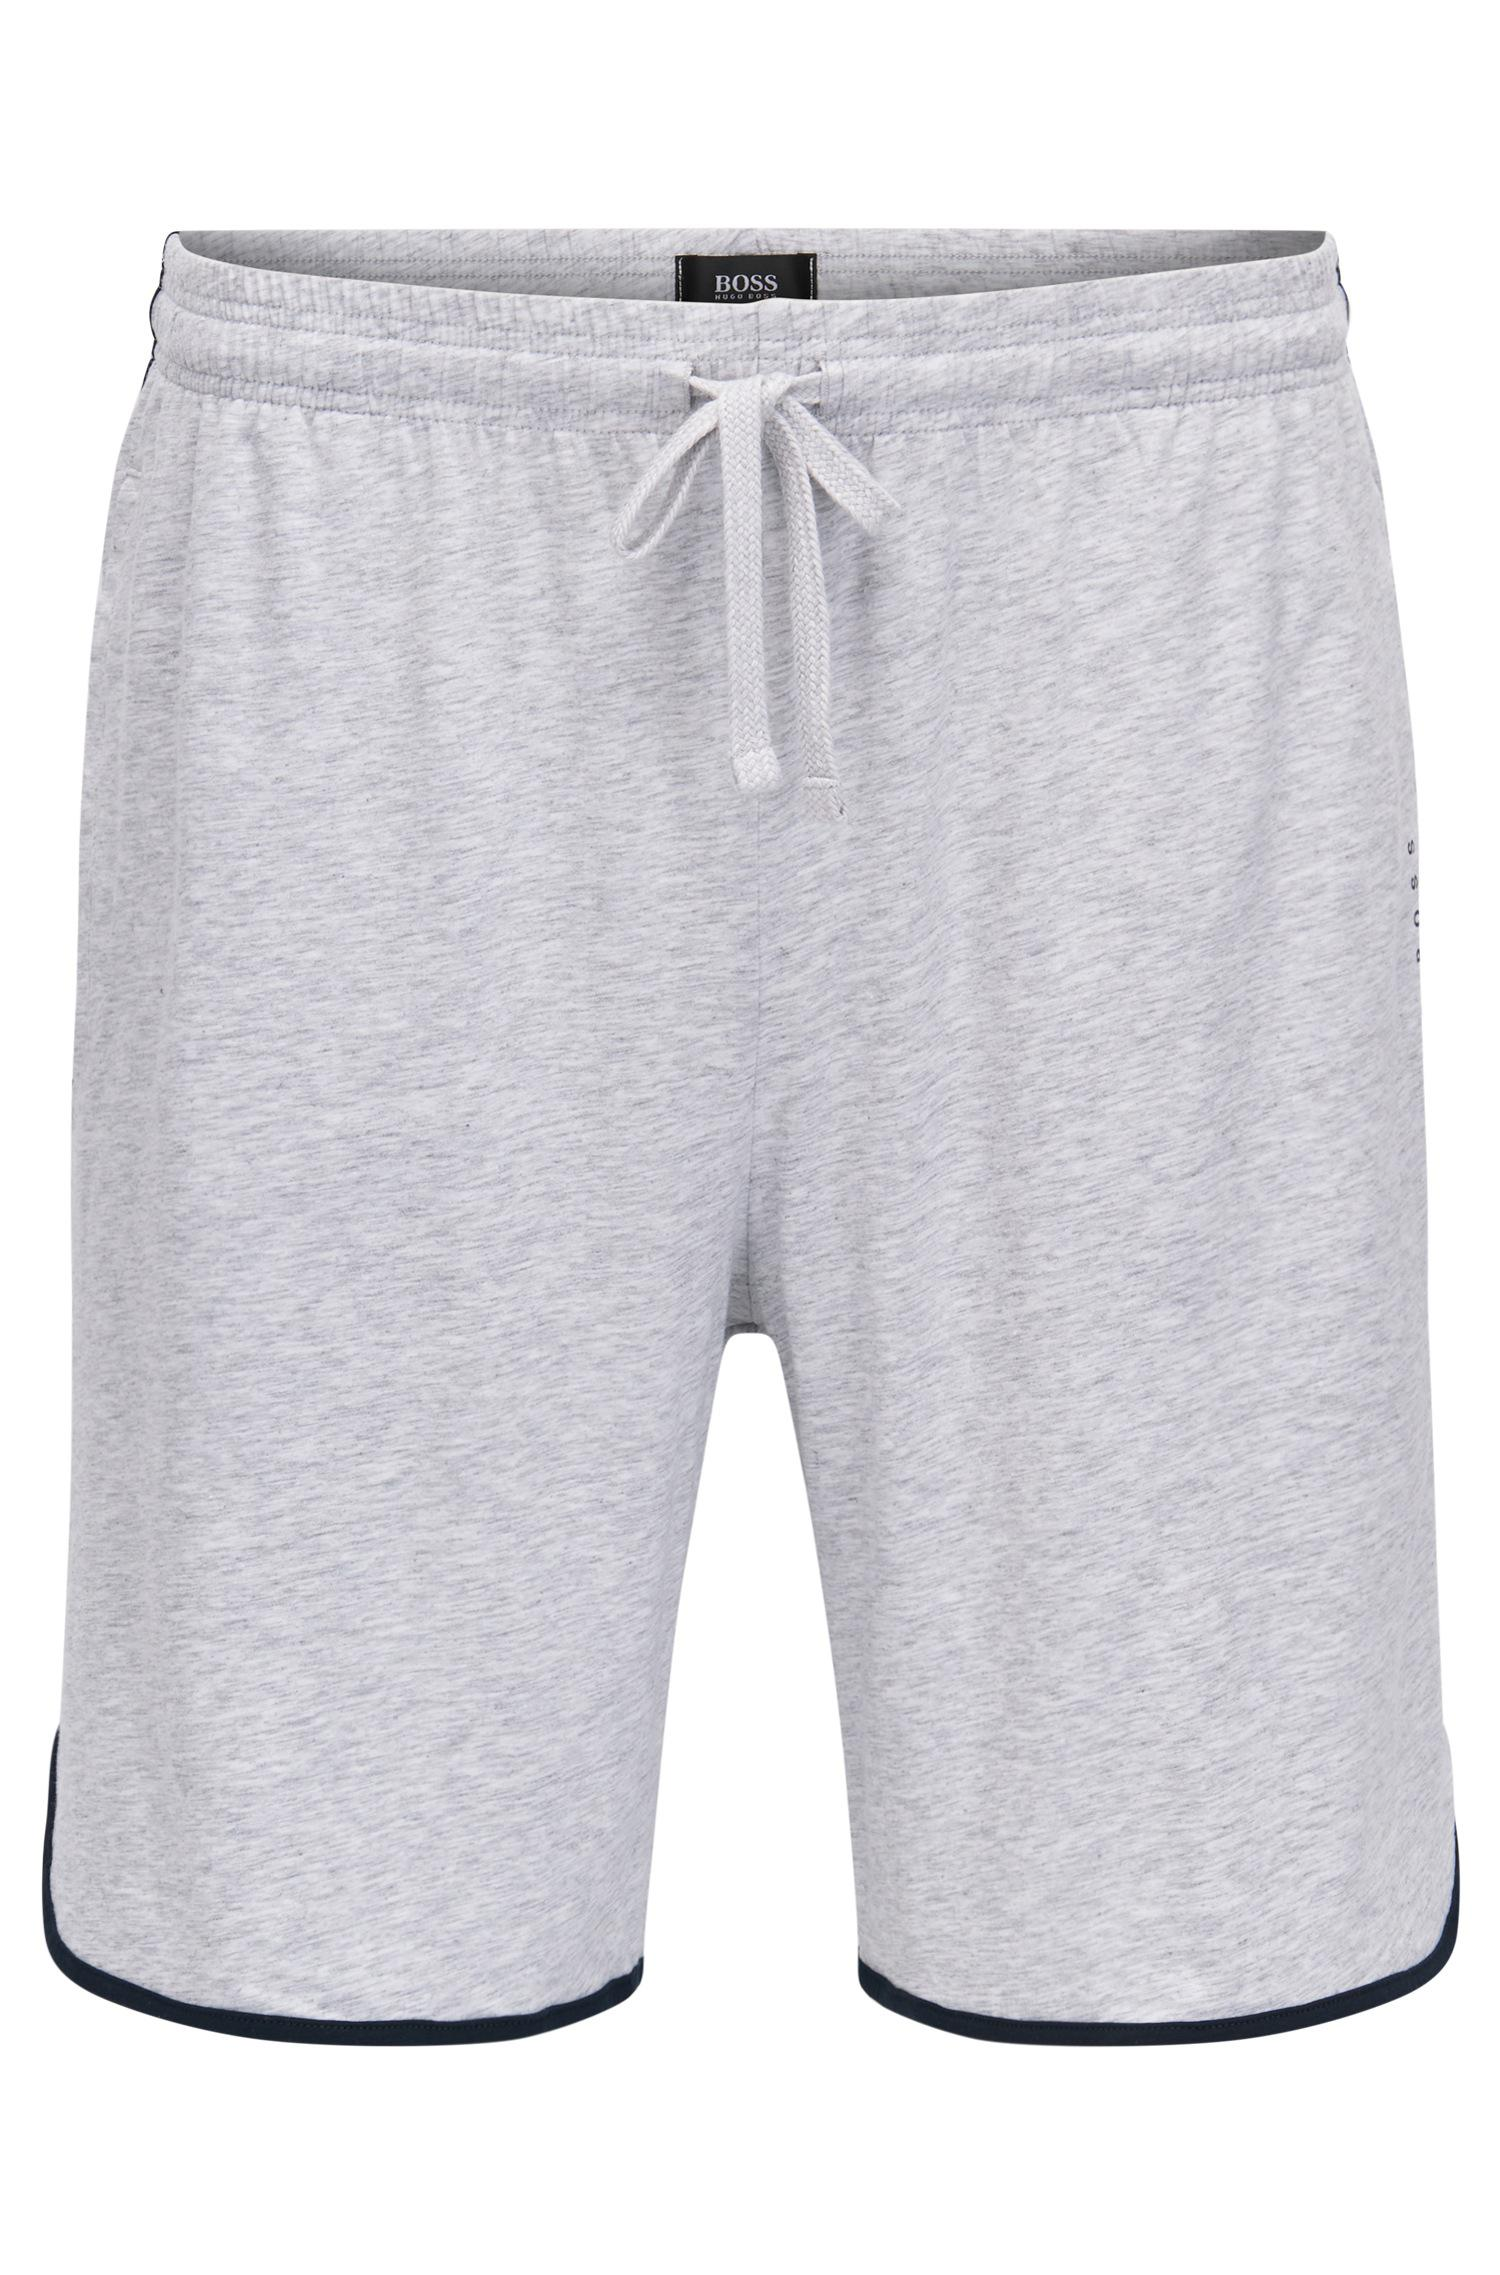 Discount High Quality Drawstring-waist pyjama shorts with piping details BOSS Big Sale Cheap Price Buy Discount Buy Cheap Eastbay lzjMCw